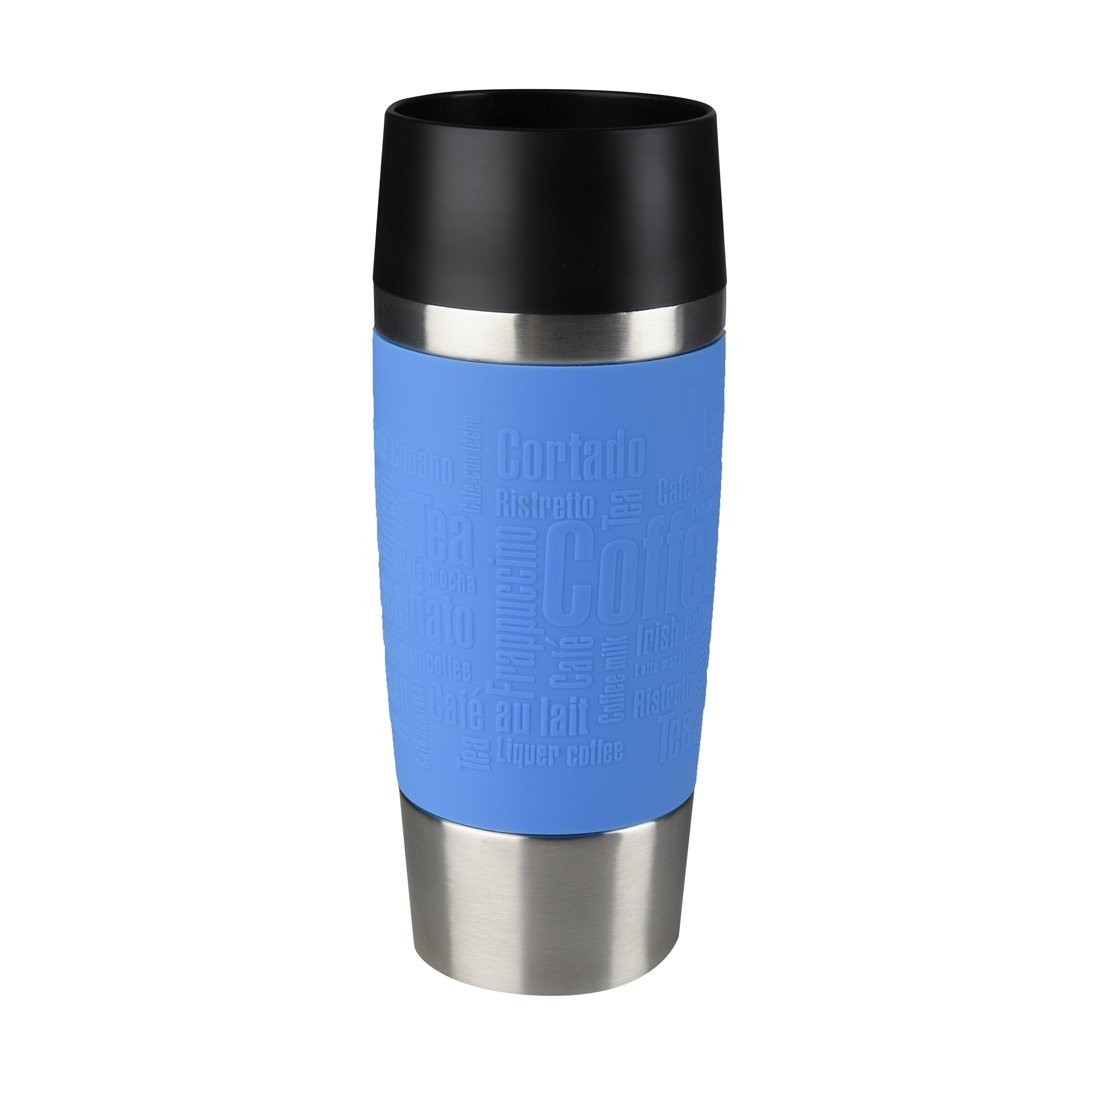 Termohrnek TRAVEL MUG Quick press 360 ml modrý - Emsa